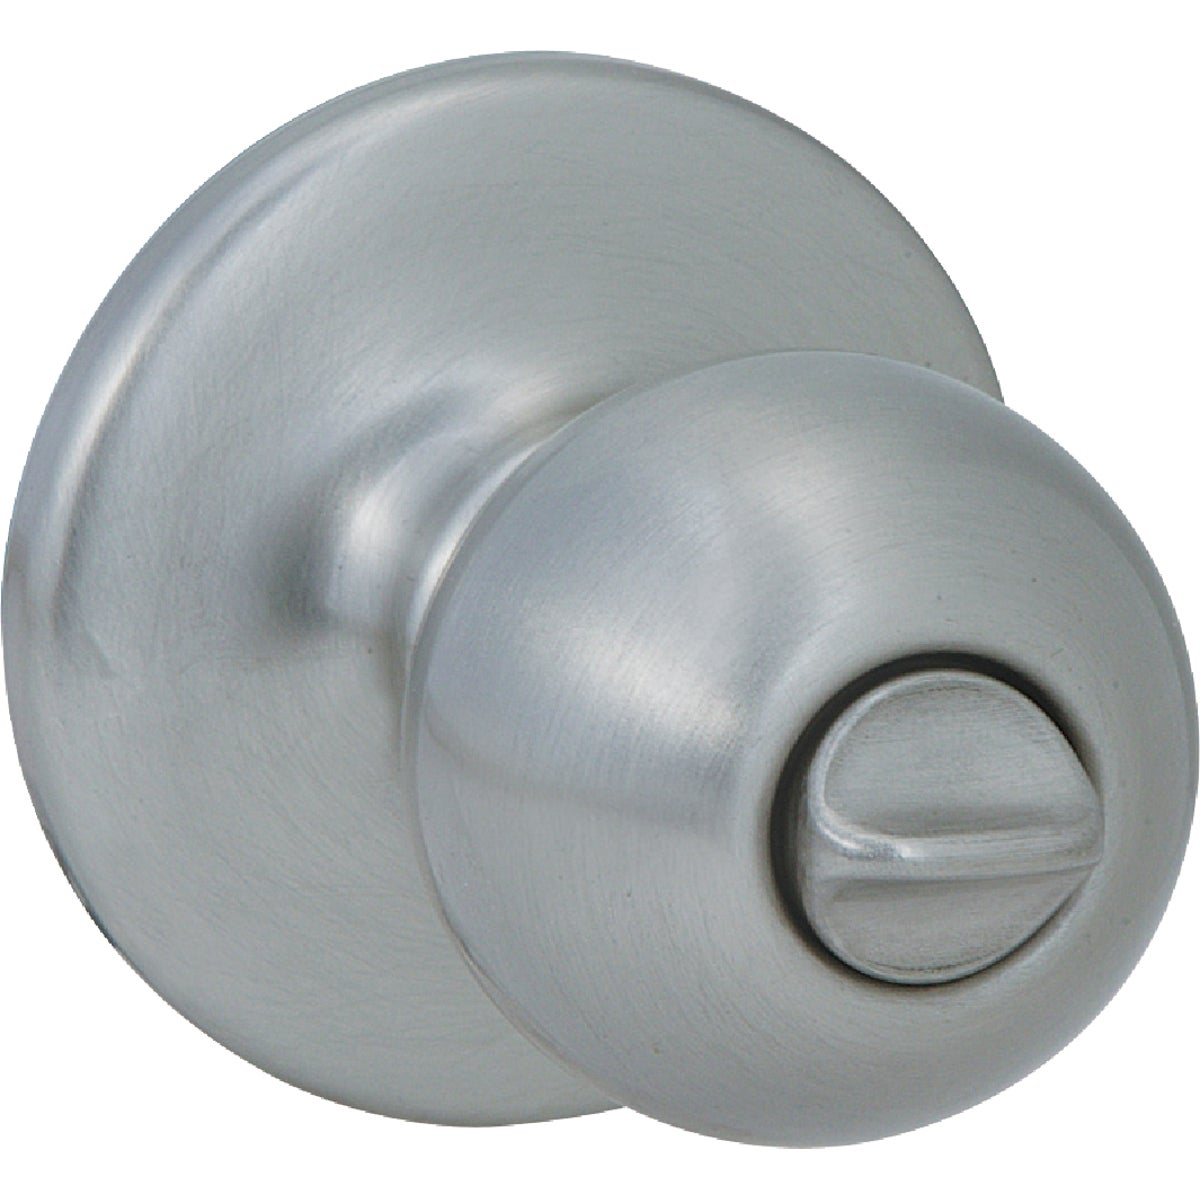 SN BX POLO PRIVACY LOCK - 300P 15 RCAL RCS by Kwikset